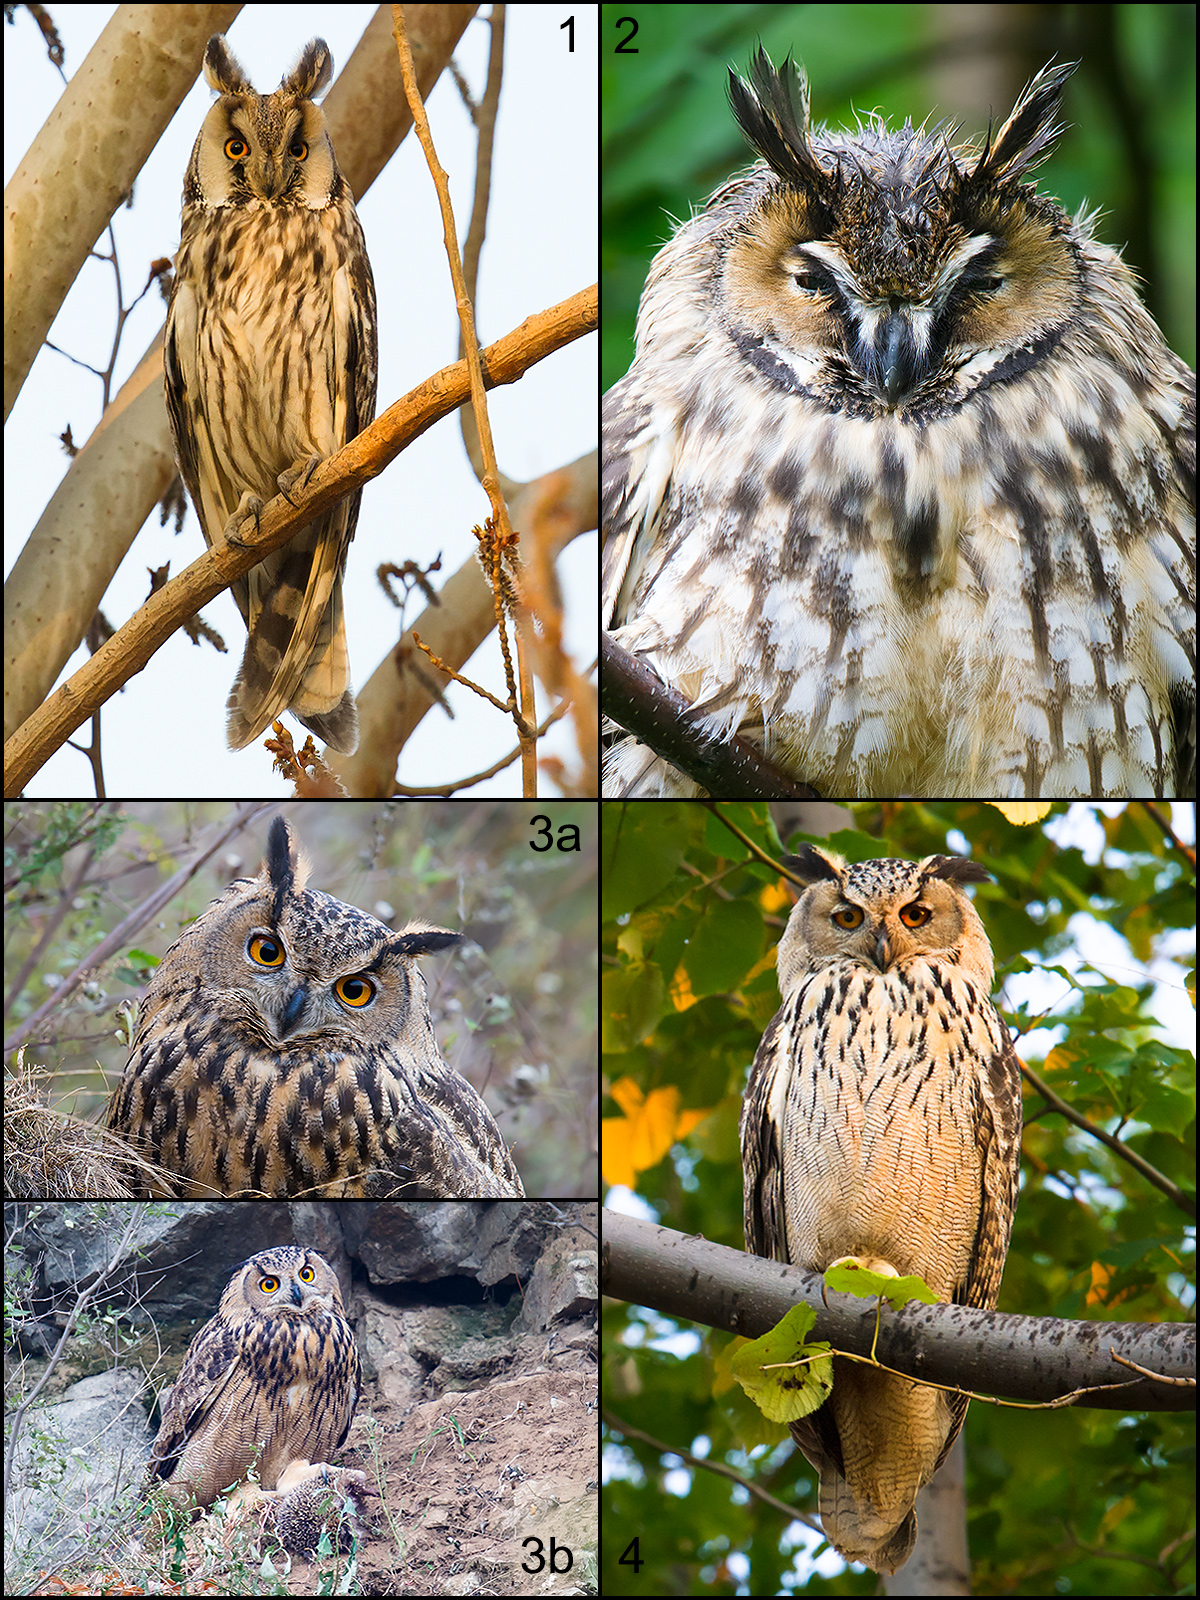 Long-eared Owl (1, 2) and Eurasian Eagle-Owl (3, 4) 'are brown with black streaky plumage, long ear tufts, and fearsome orange eyes,' MacKinnon writes. 'In summer these two owls hunt chipmunks and pikas in dense forest.' 1: Zhalong Reserve, Heilongjiang, 4 May 2013. 2: Xidaquan Forest, Boli, Heilongjiang, 19 Aug. 2015. 3a, 3b: near Beidaihe, Hebei, 29 Sept. 2011. 4: Dawucun, Boli, Heilongjiang, 13 Aug. 2015. All by Craig Brelsford.